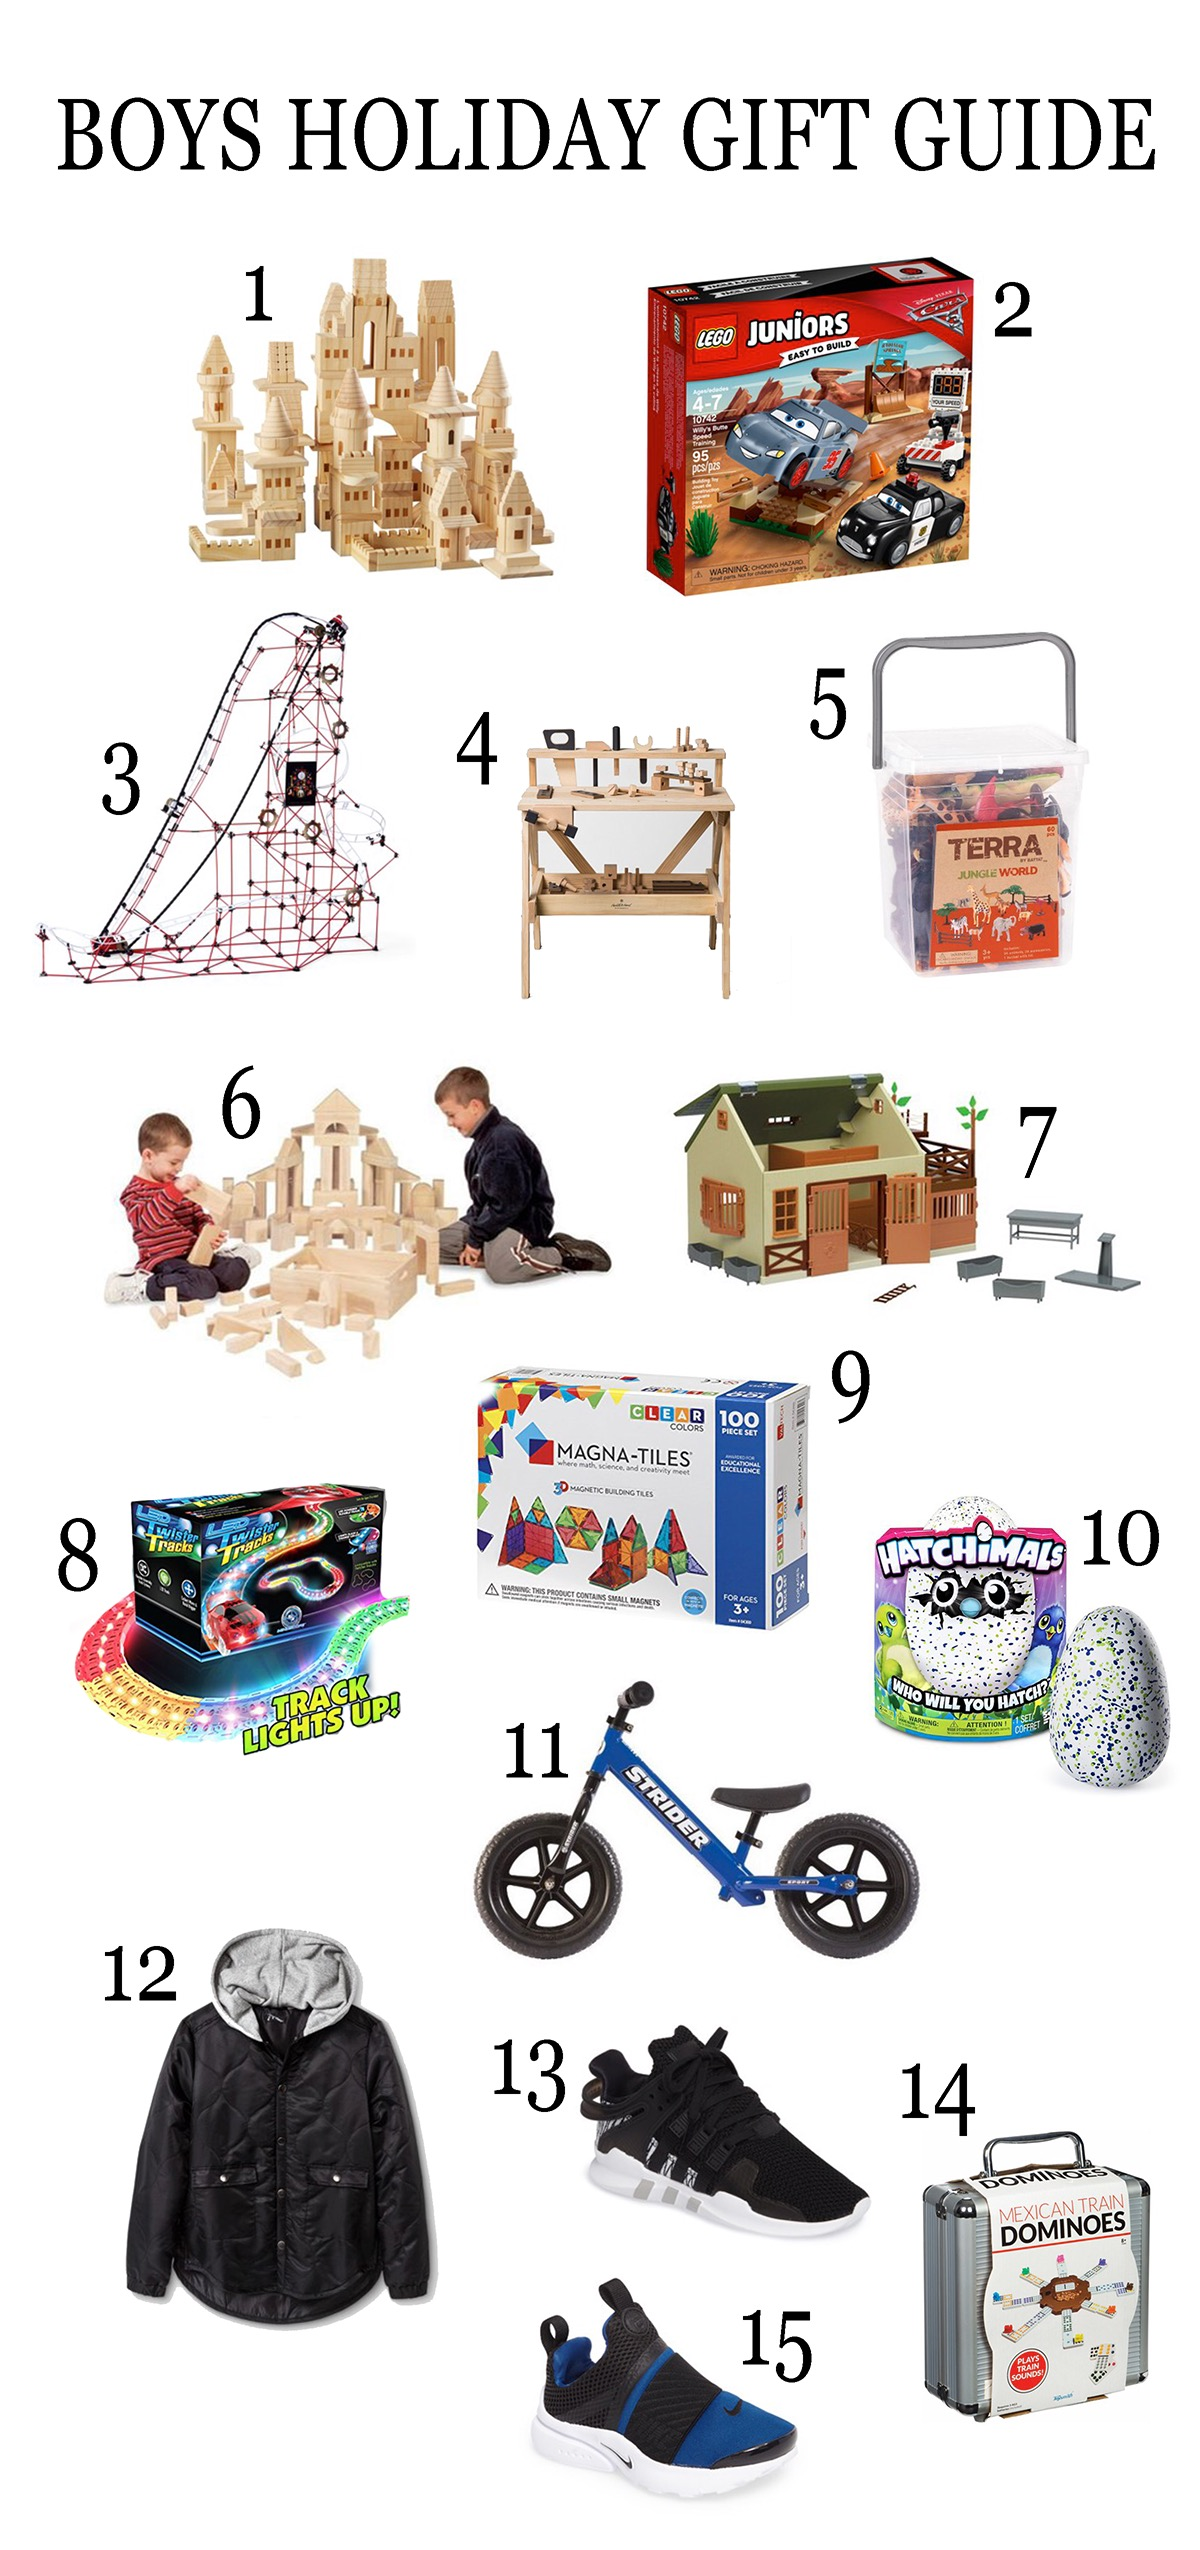 Boys Holiday Gift Guide: 15 Awesome Ideas by Las Vegas style blogger Life of A Sister